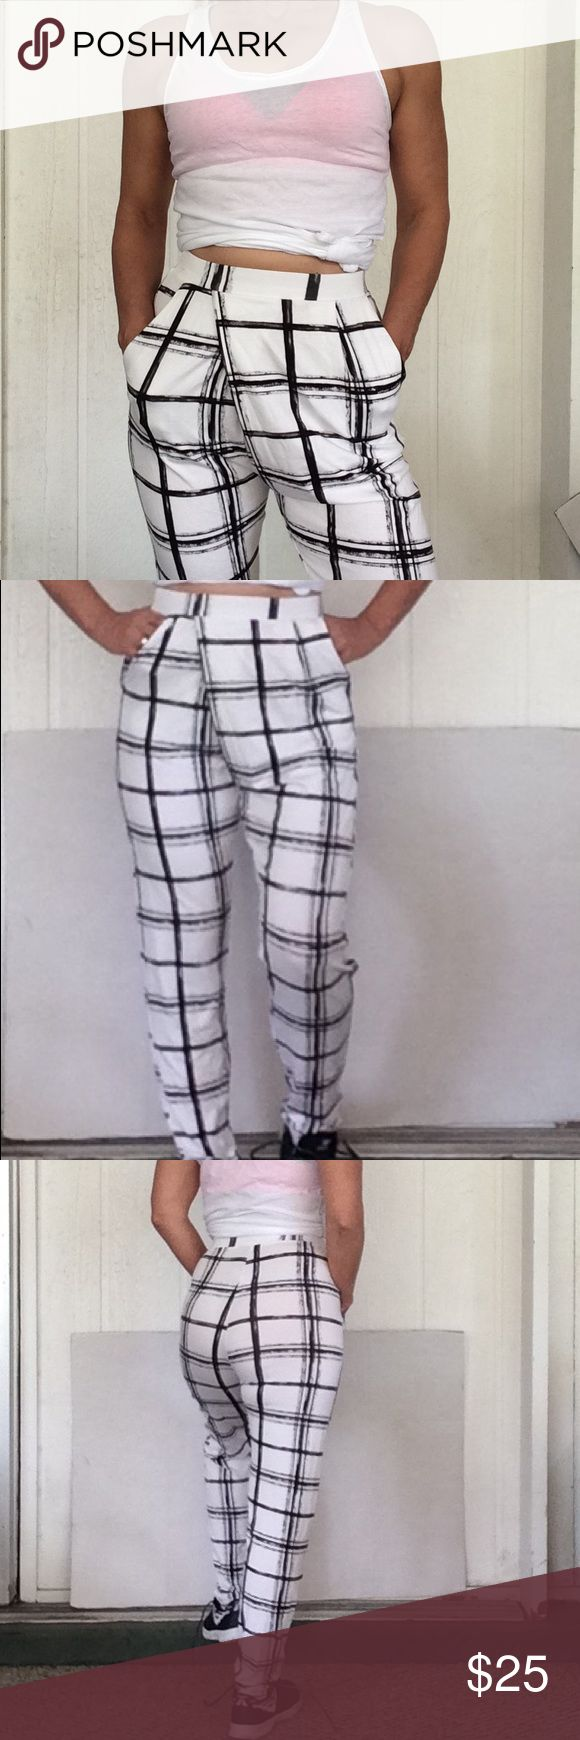 NWT ASOS JERSEY KNIT HAREM PANTS NWT ASOS harem tapered pants. Gorgeous drapey fabric blend of 97% viscose and 3% elastane. Graphic black and white patterned checks. Asymmetrical stitching in front harem style pants. Fuller cut at hip but tapers to ankle. High rise waist, side pockets, relaxed fit loose but not oversized. No flaws. ASOS Pants Track Pants & Joggers